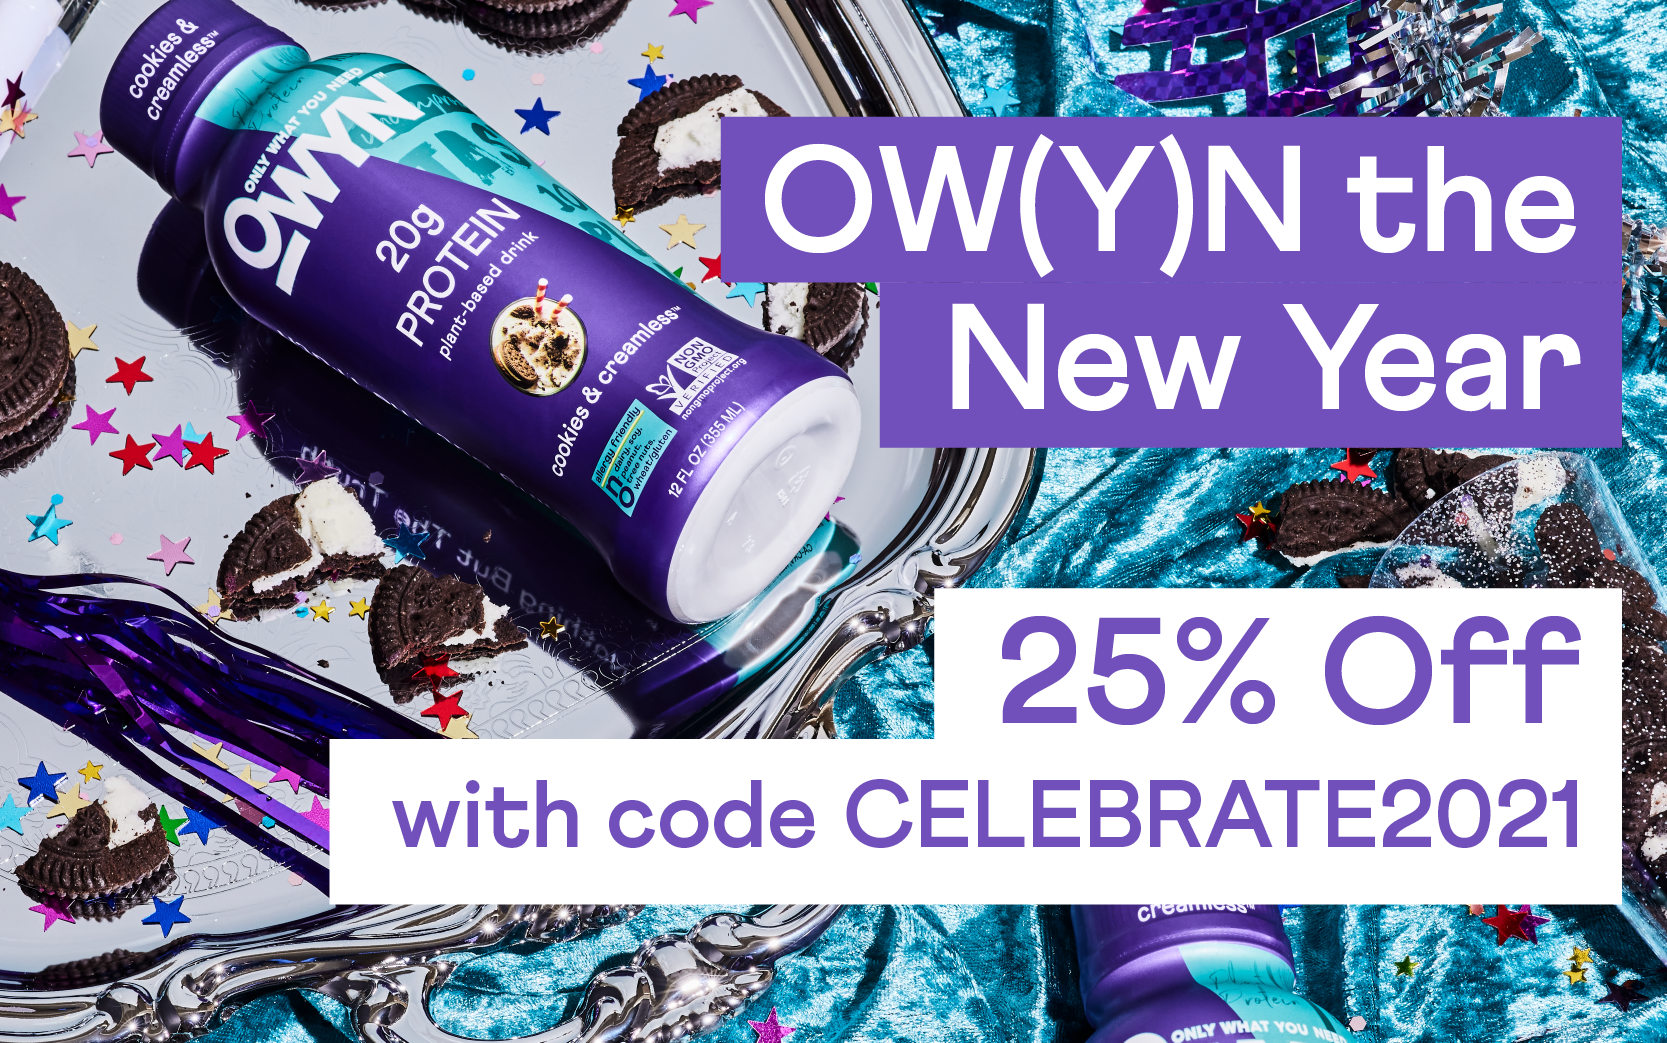 OW(Y)N the New Year - 25% Off